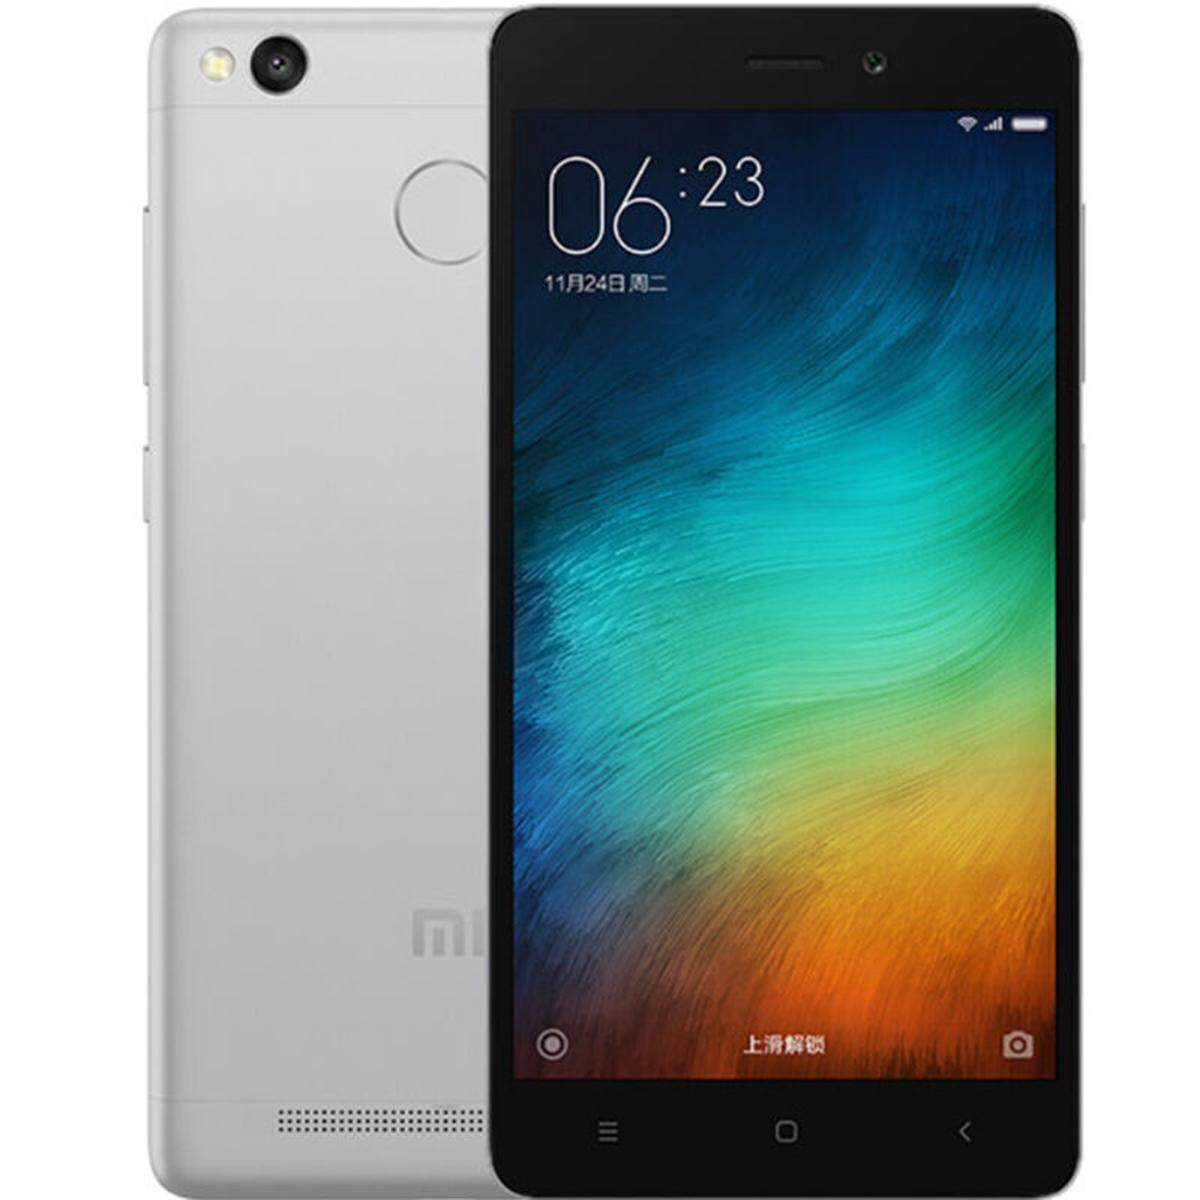 Buy Sell Cheapest Xiaomi Redmi 3s Best Quality Product Deals 3x Ram 2 32gb Android 51 4g Phone W 3gb Rom Deep